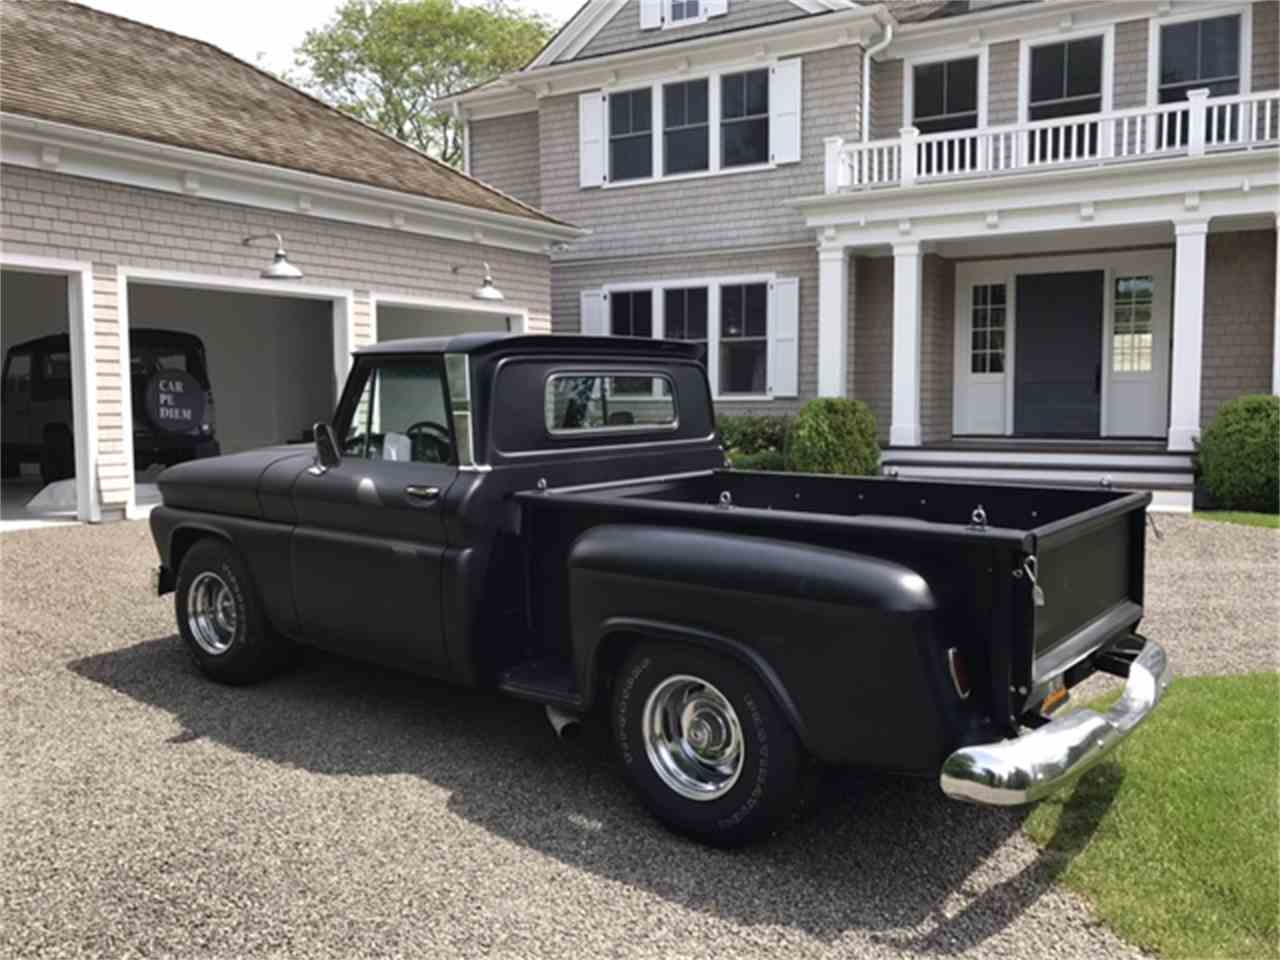 Truck 1965 chevrolet truck : 1965 Chevrolet C/K 10 for Sale on ClassicCars.com